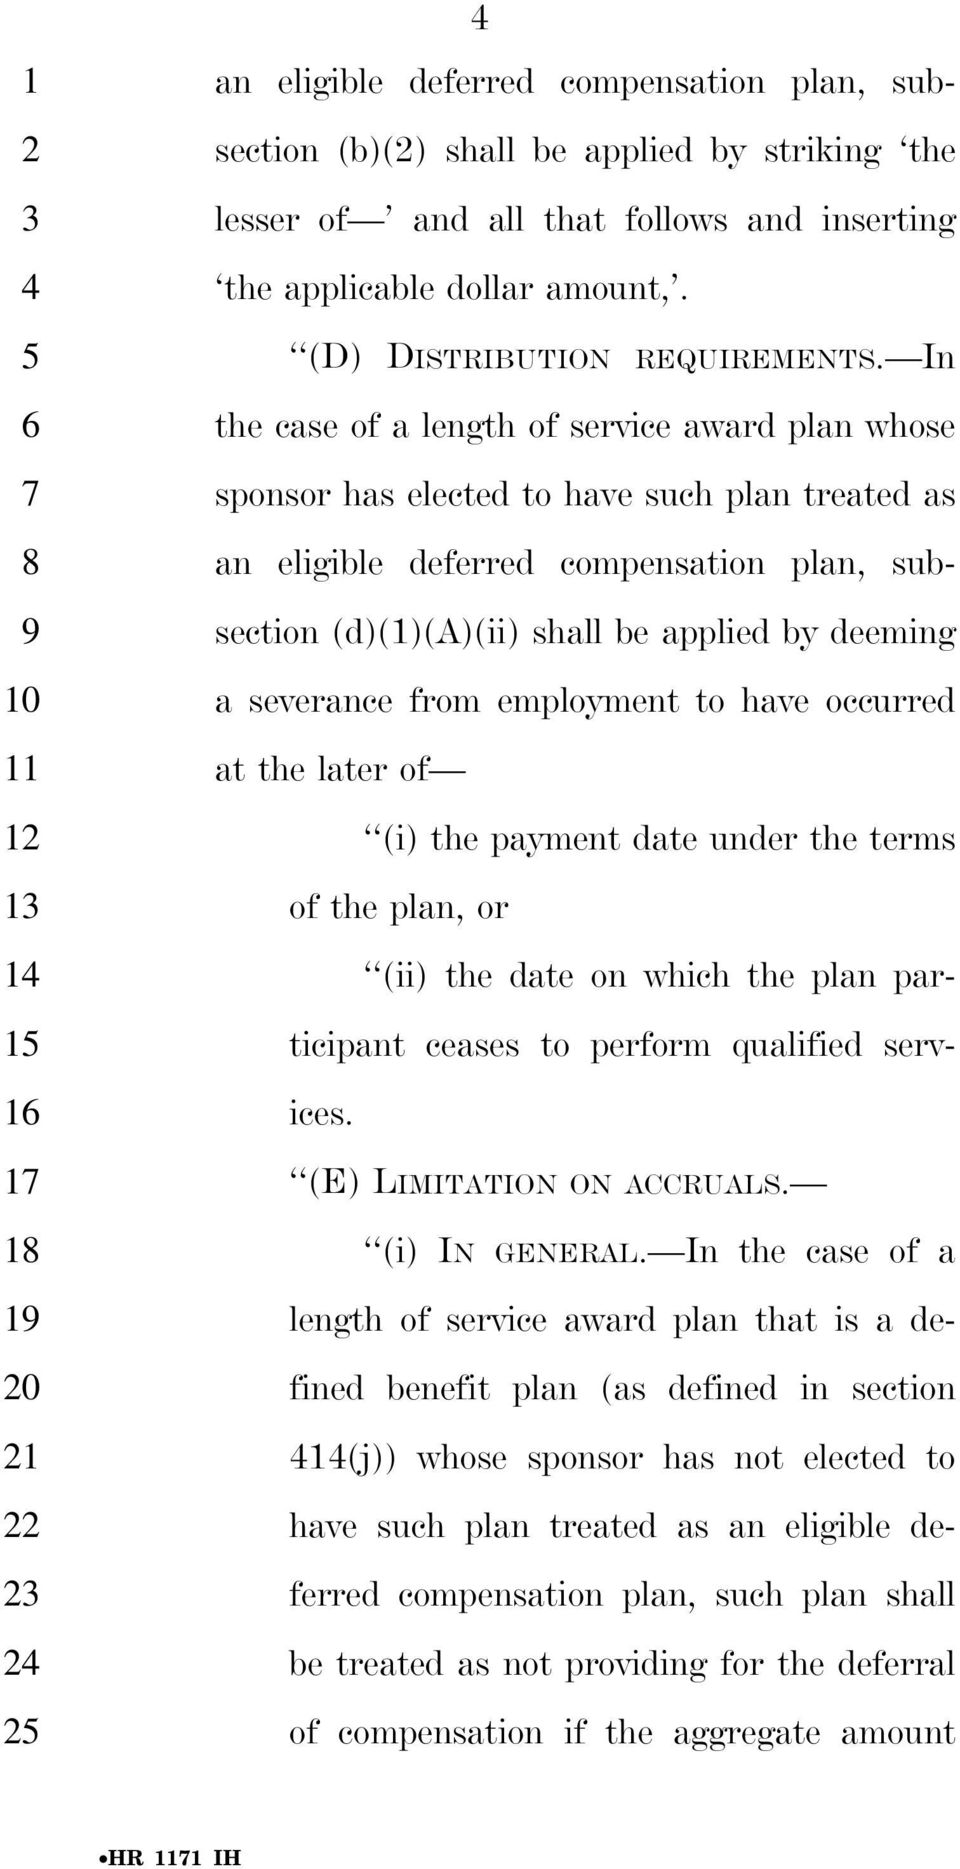 In the case of a length of service award plan whose sponsor has elected to have such plan treated as an eligible deferred compensation plan, subsection (d)()(a)(ii) shall be applied by deeming a